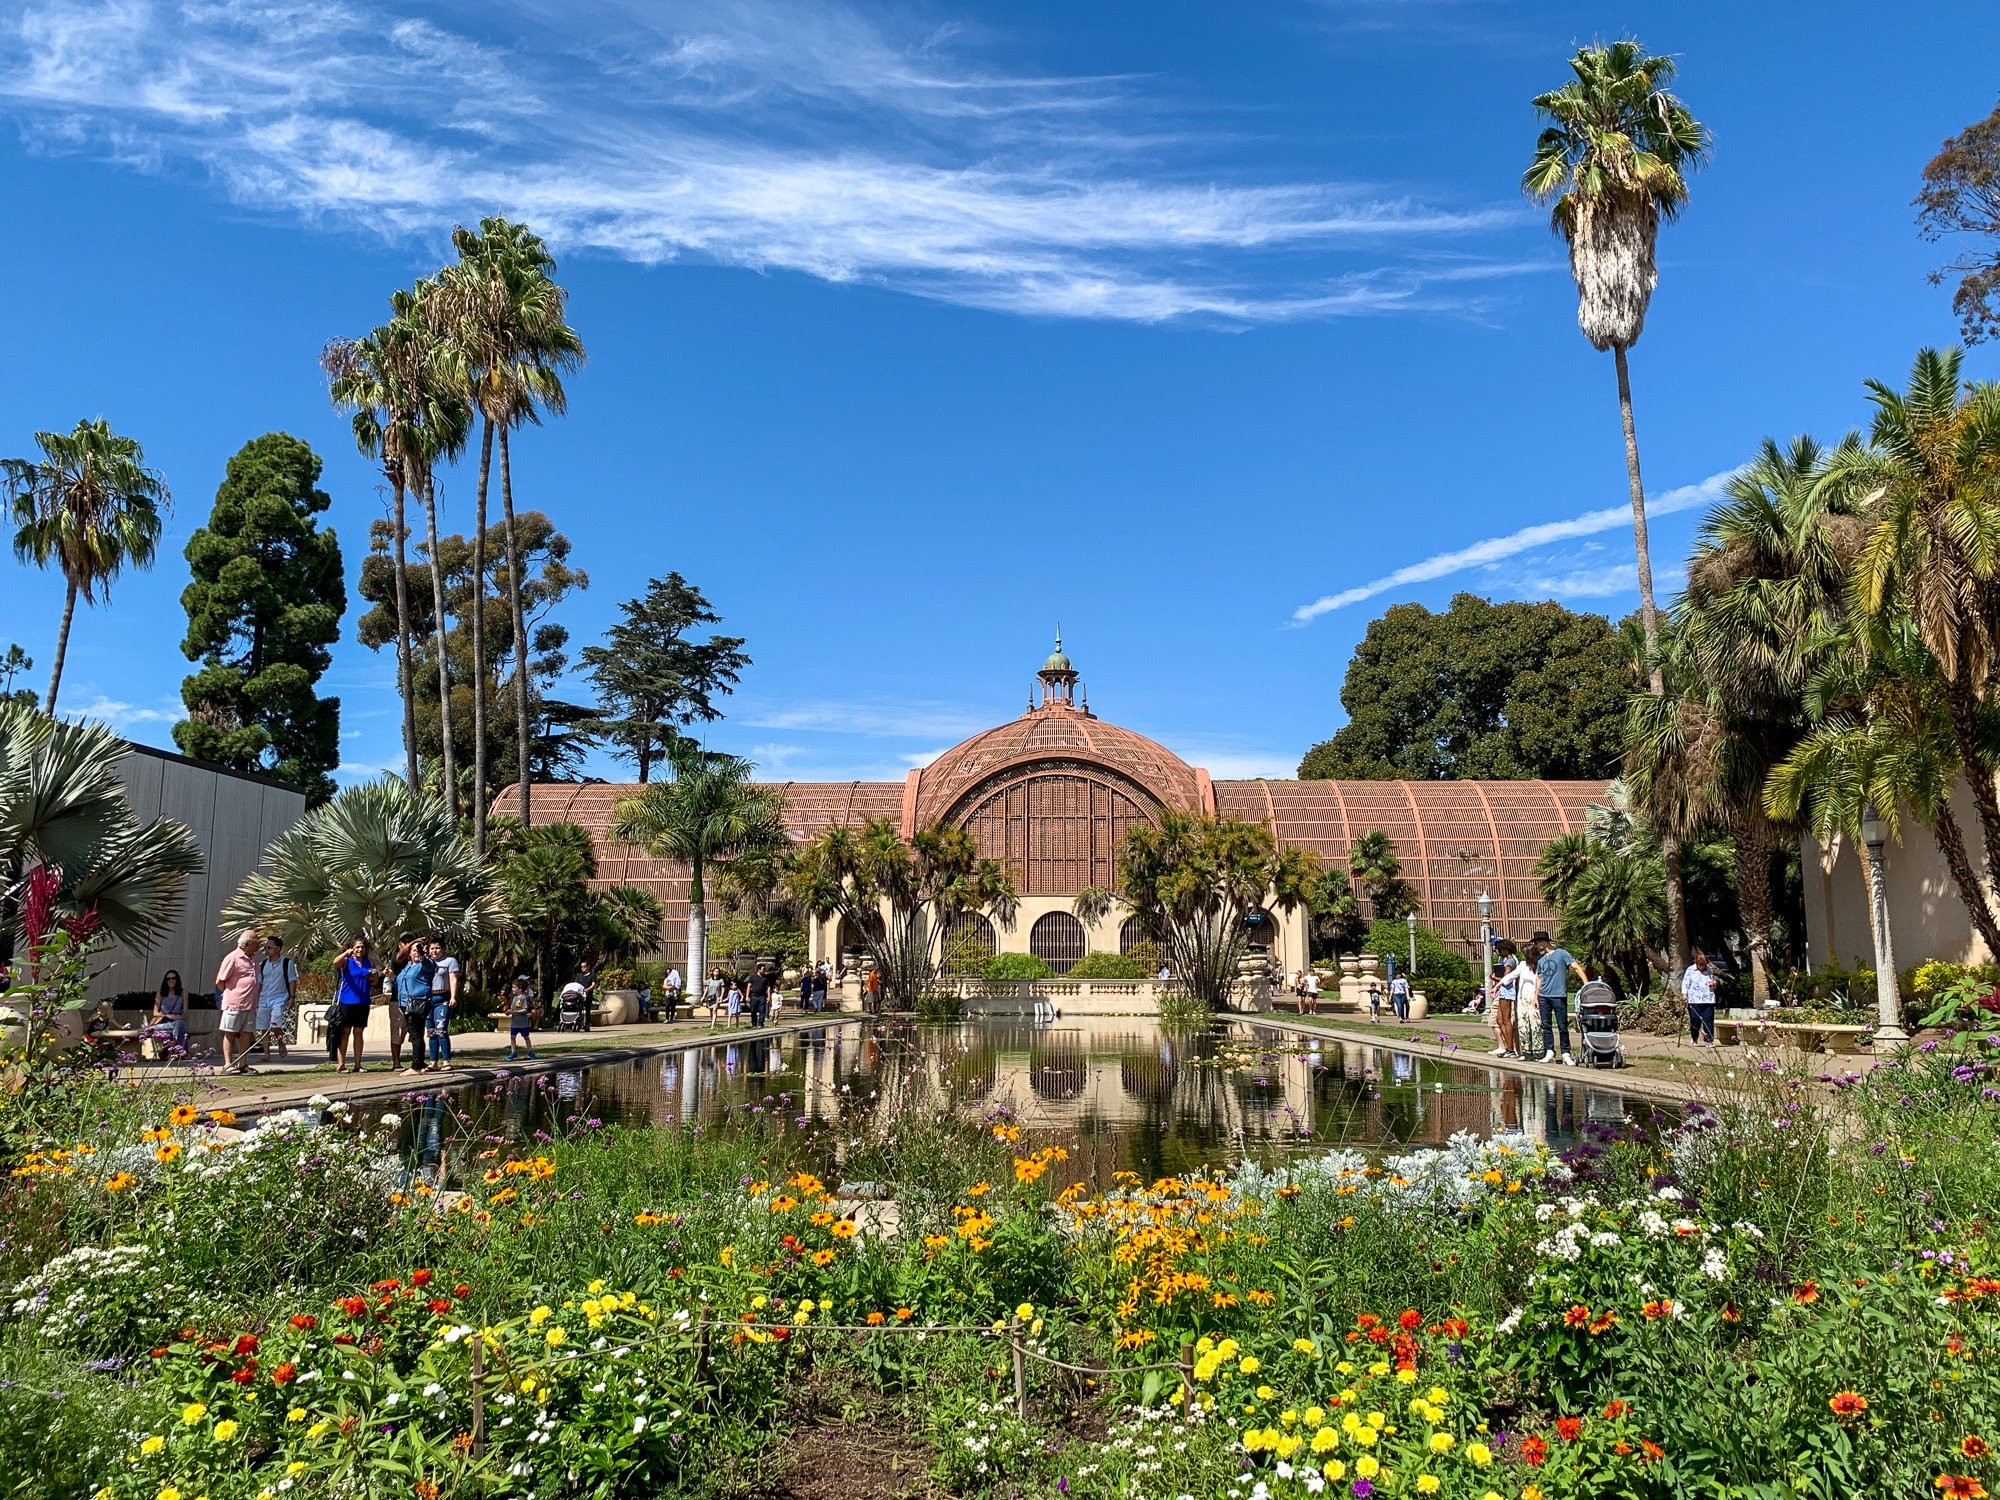 Balboa Park Lily Pond and Conservatory